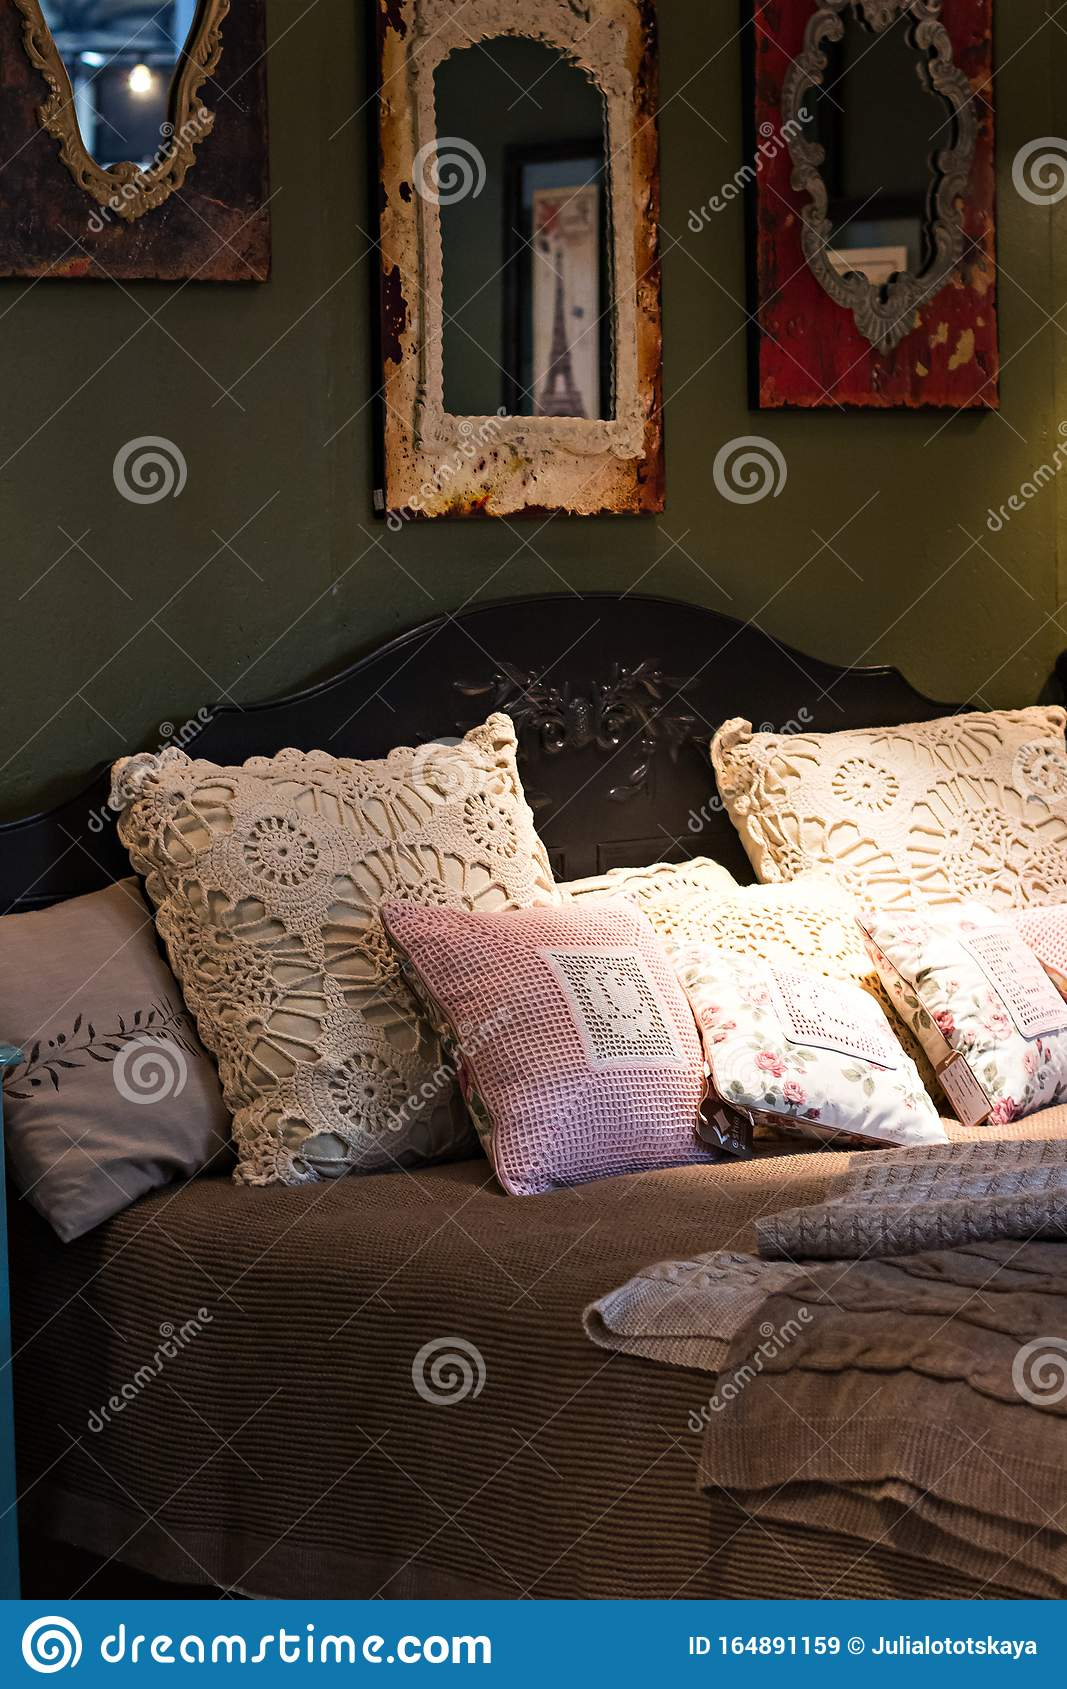 Cozy Bed Lots Pillows Photos Free Royalty Free Stock Photos From Dreamstime